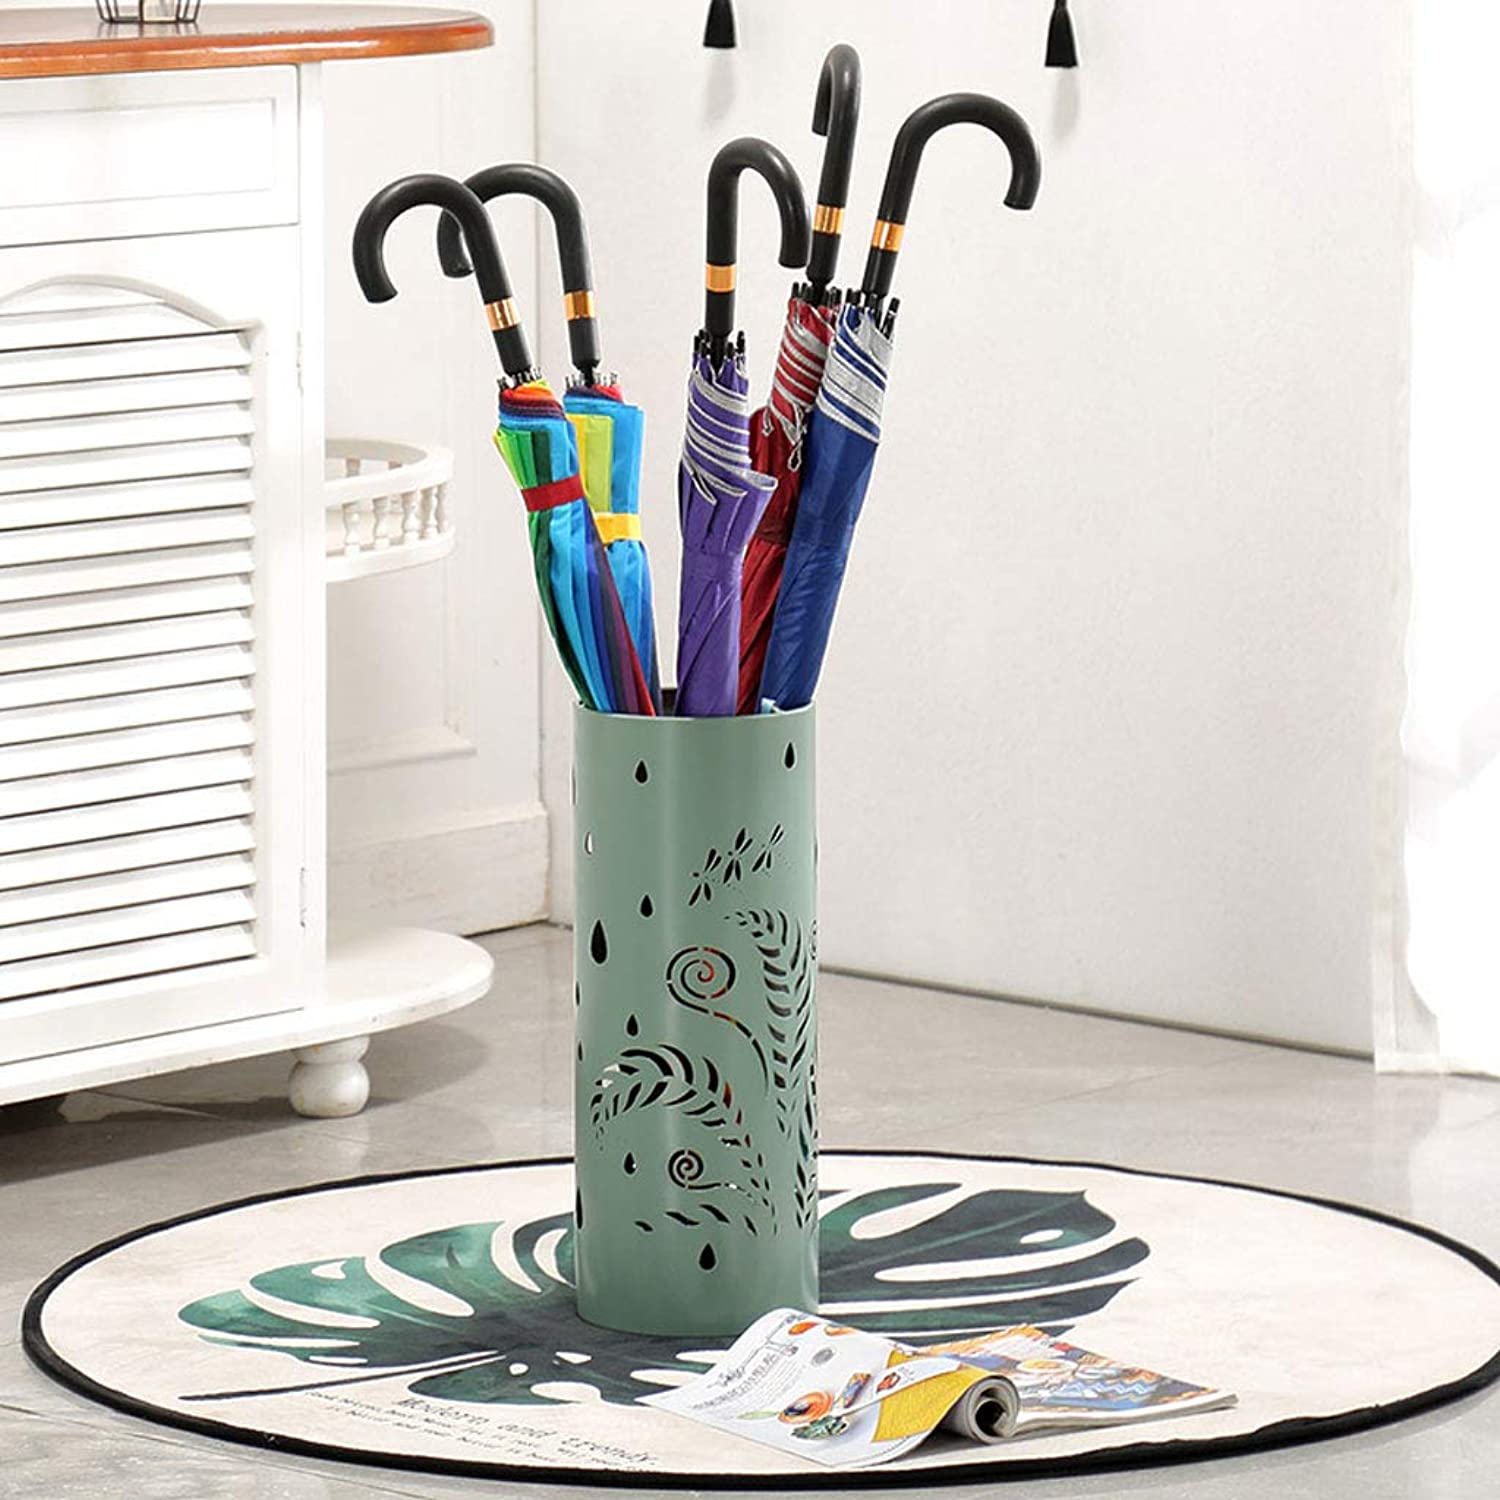 CS Nordic Wrought Iron Umbrella Stand Innovative Whole Board Cutting Umbrella Barrel Hotel Lobby Umbrella Stand Umbrella Stand Home (color   Dark Green)